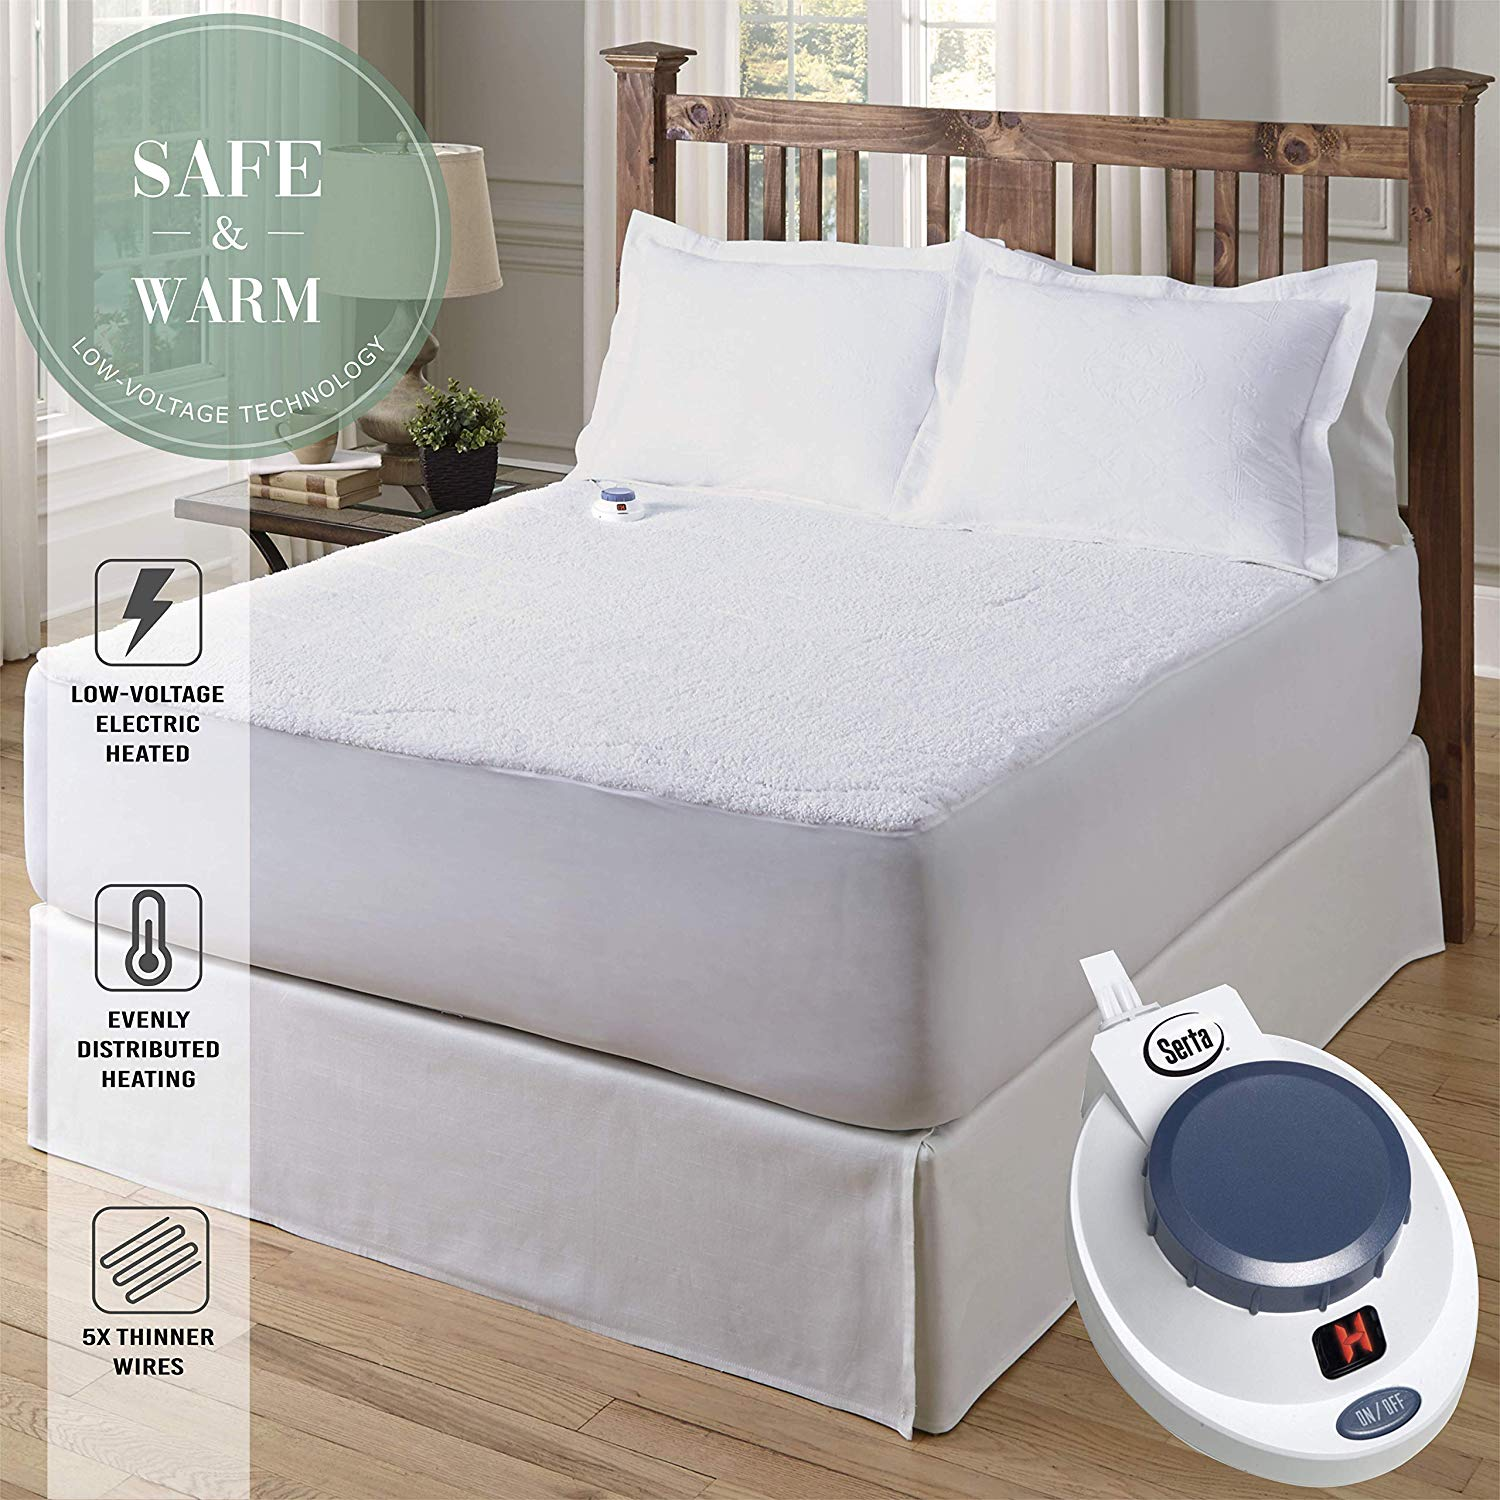 Serta best heated mattress pad review by www.dailysleep.org